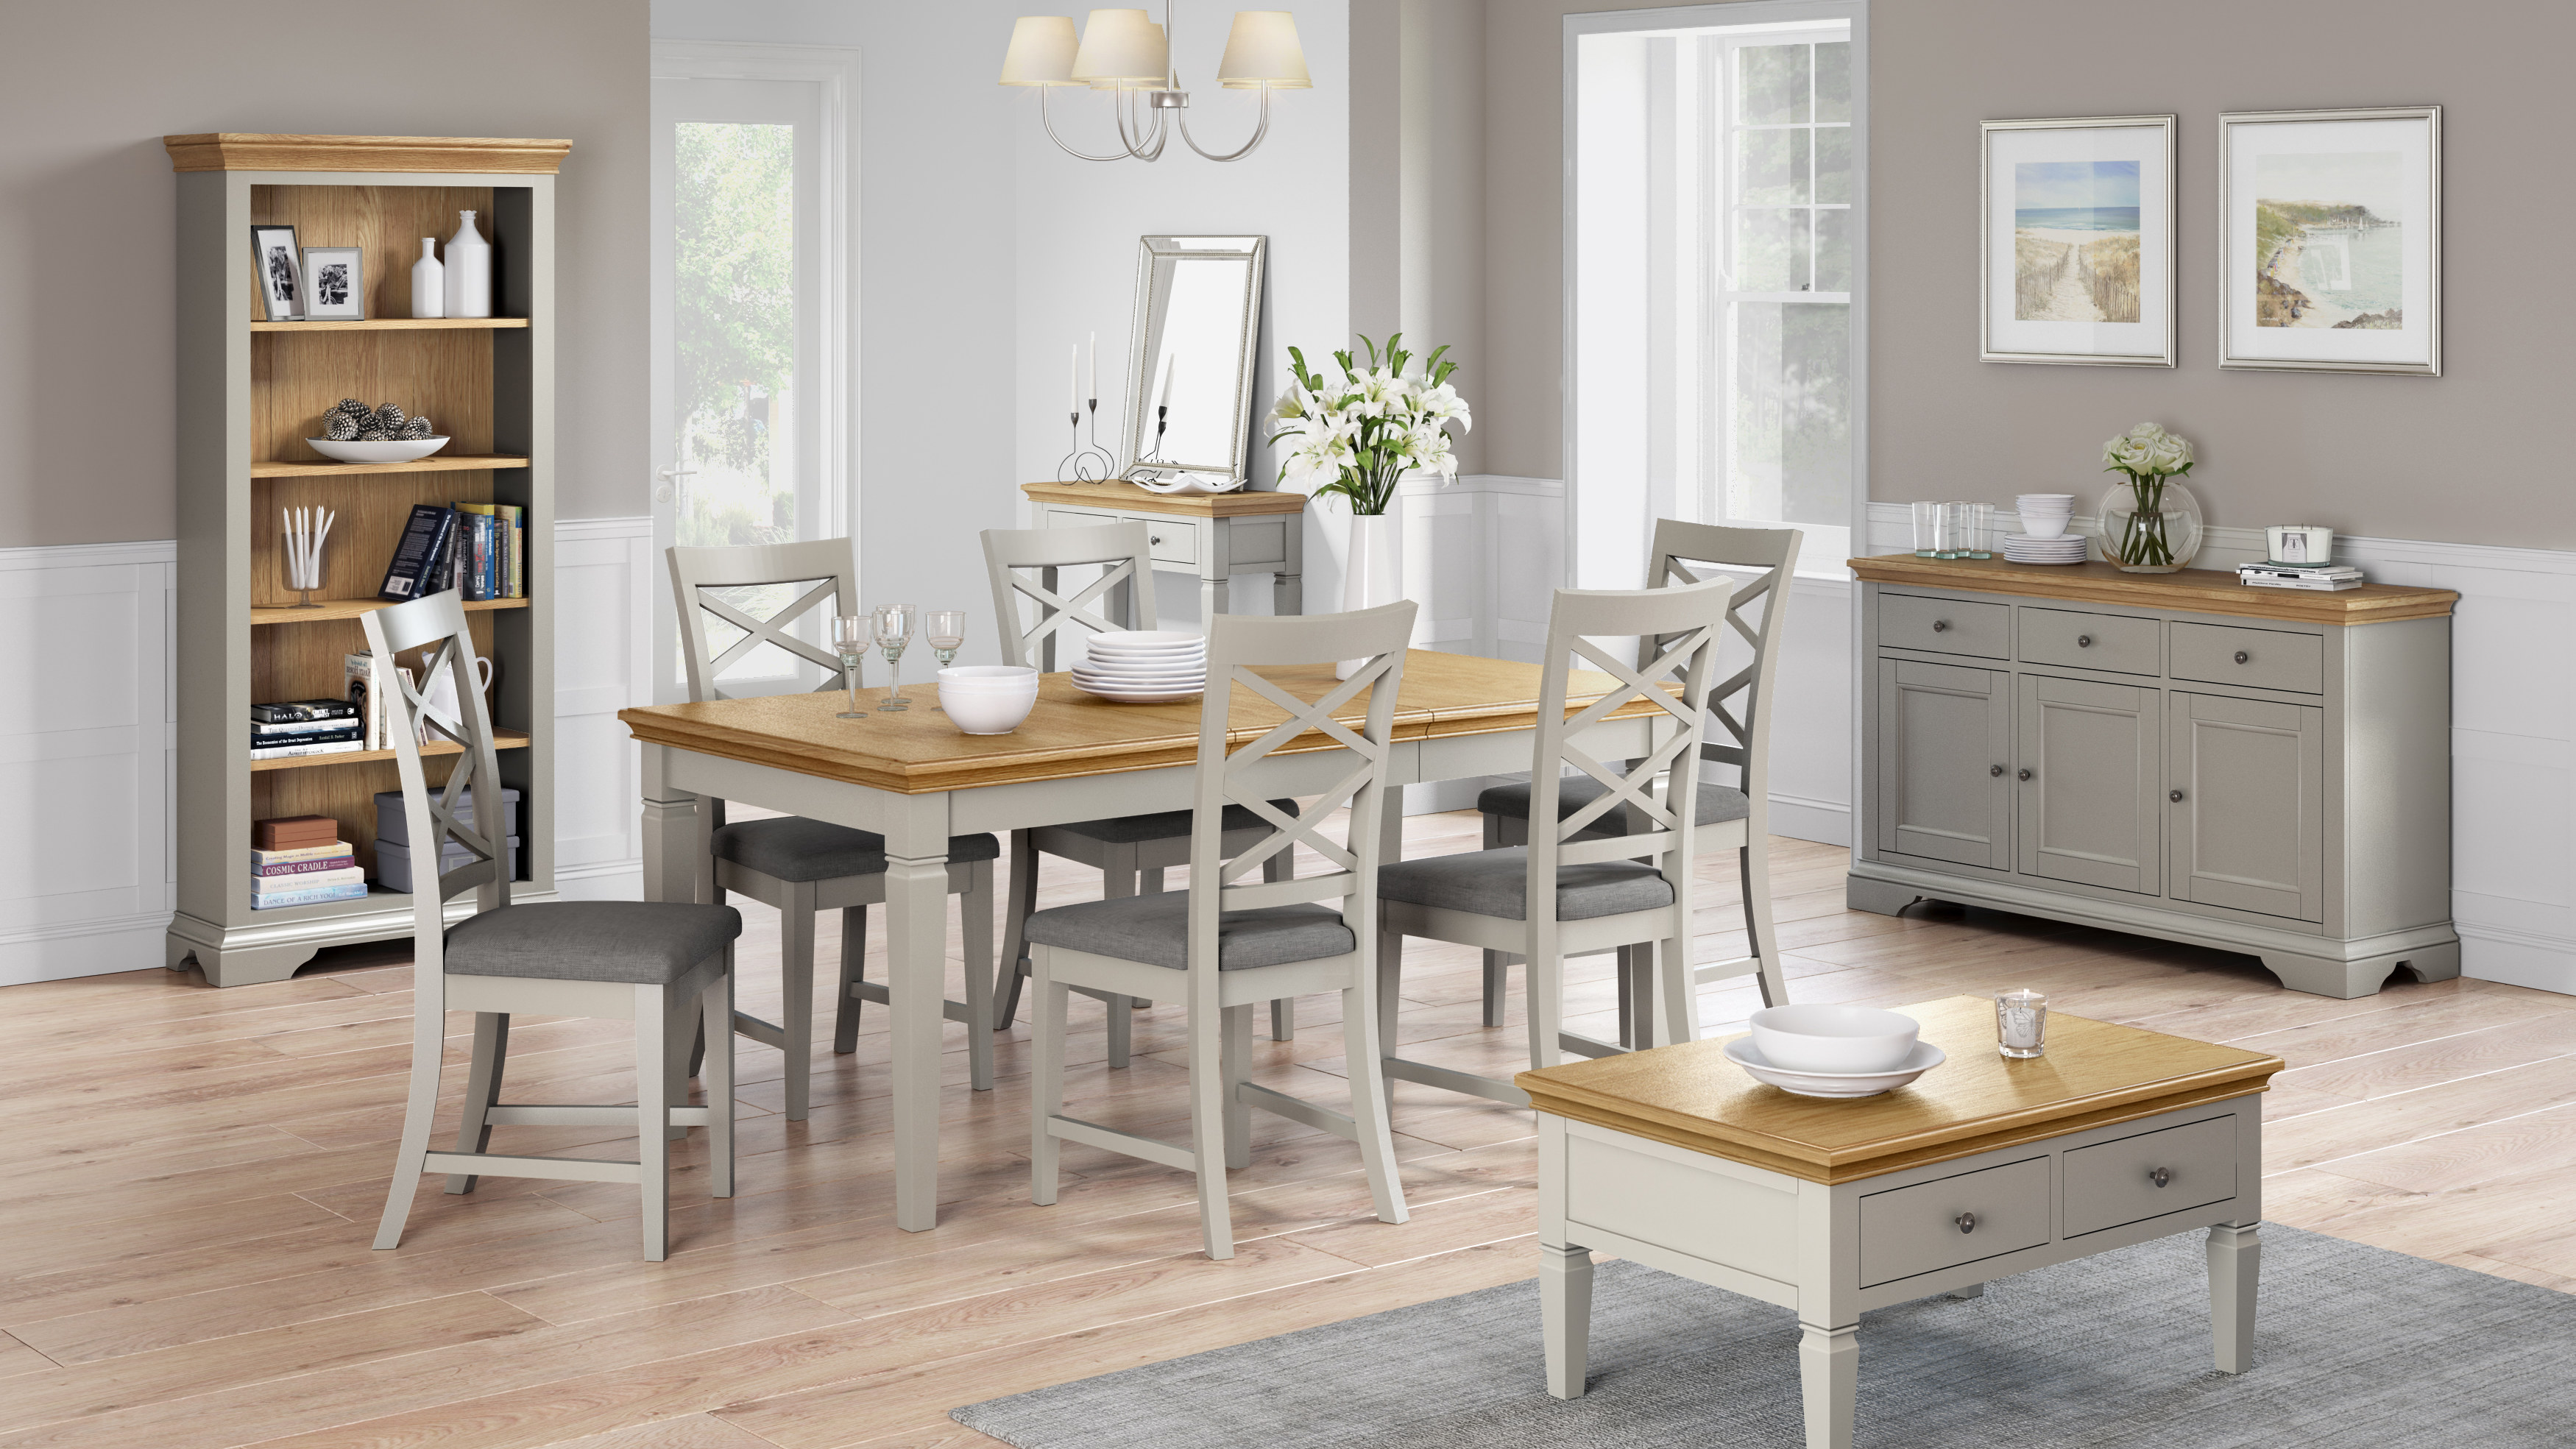 Rustique Home 100% Solid Painted Oak Dining set with table with six chairs. The Chairs are soft grey color with cross backs and the table is grey with natural oak color top. The dining set is complemented by a bookcase, coffee table, a sideboard and a matching console table.